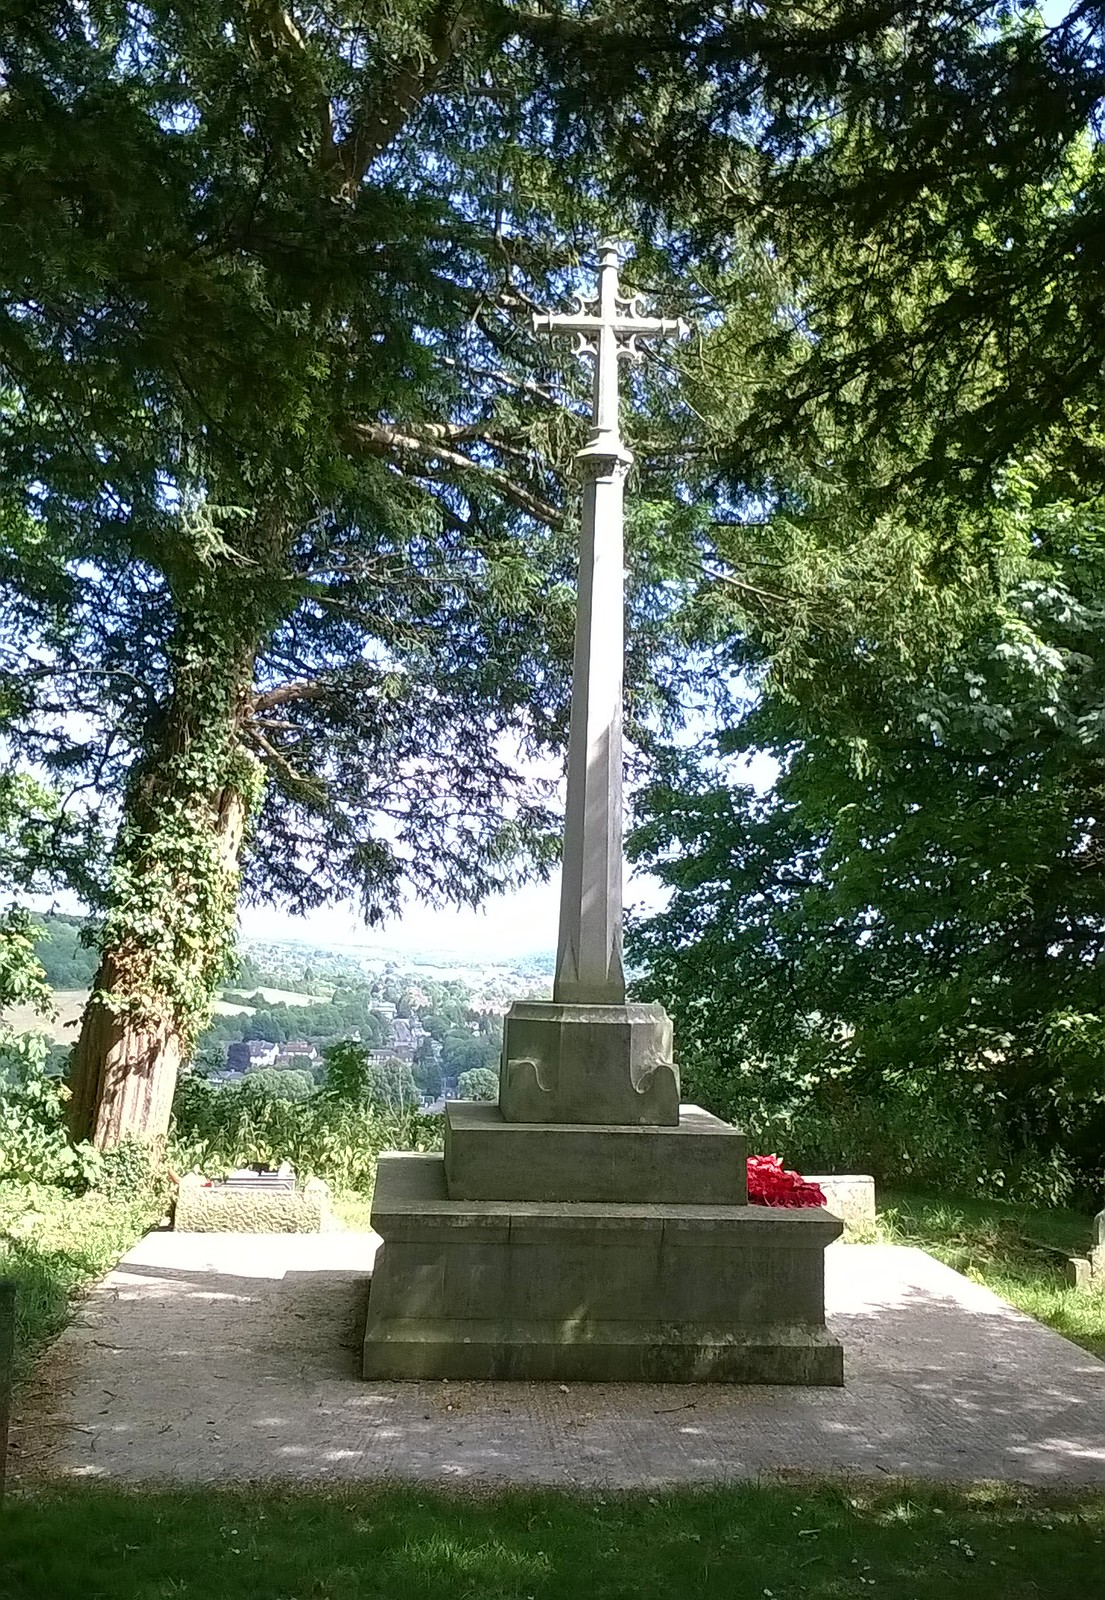 War memorial on hill by St Lawrence church